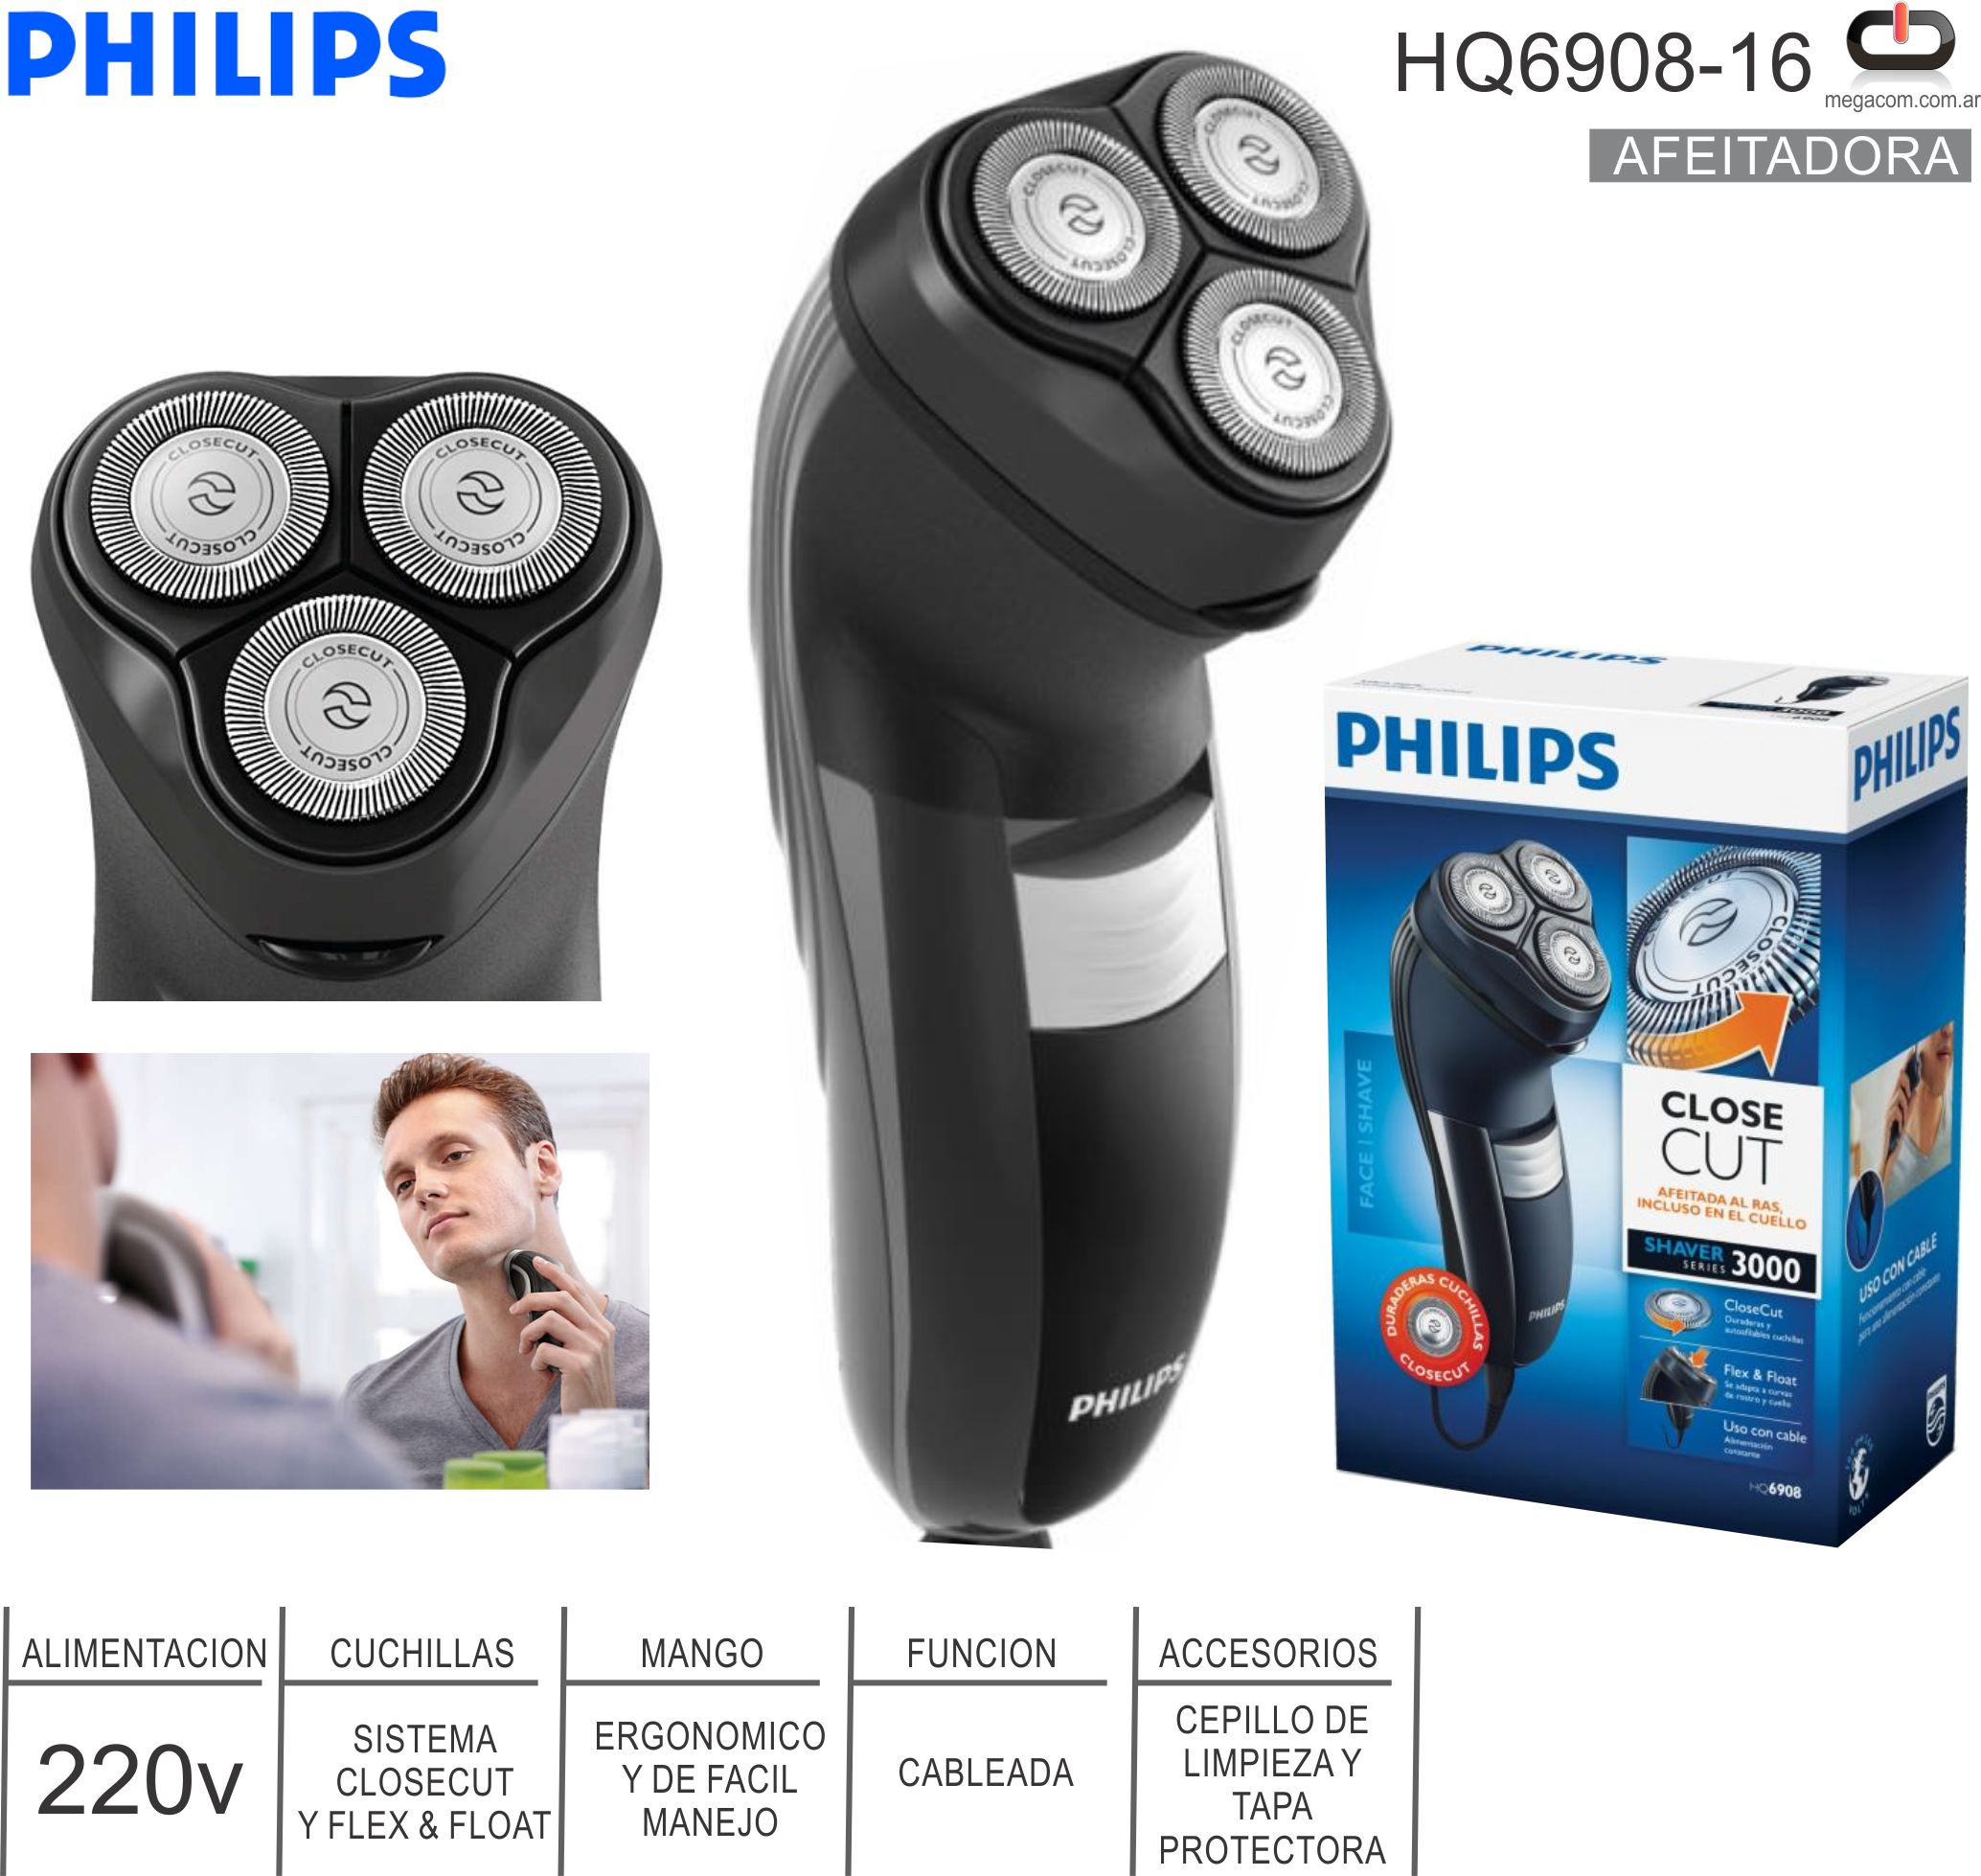 Afeitadora PHILIPS HQ6908-16